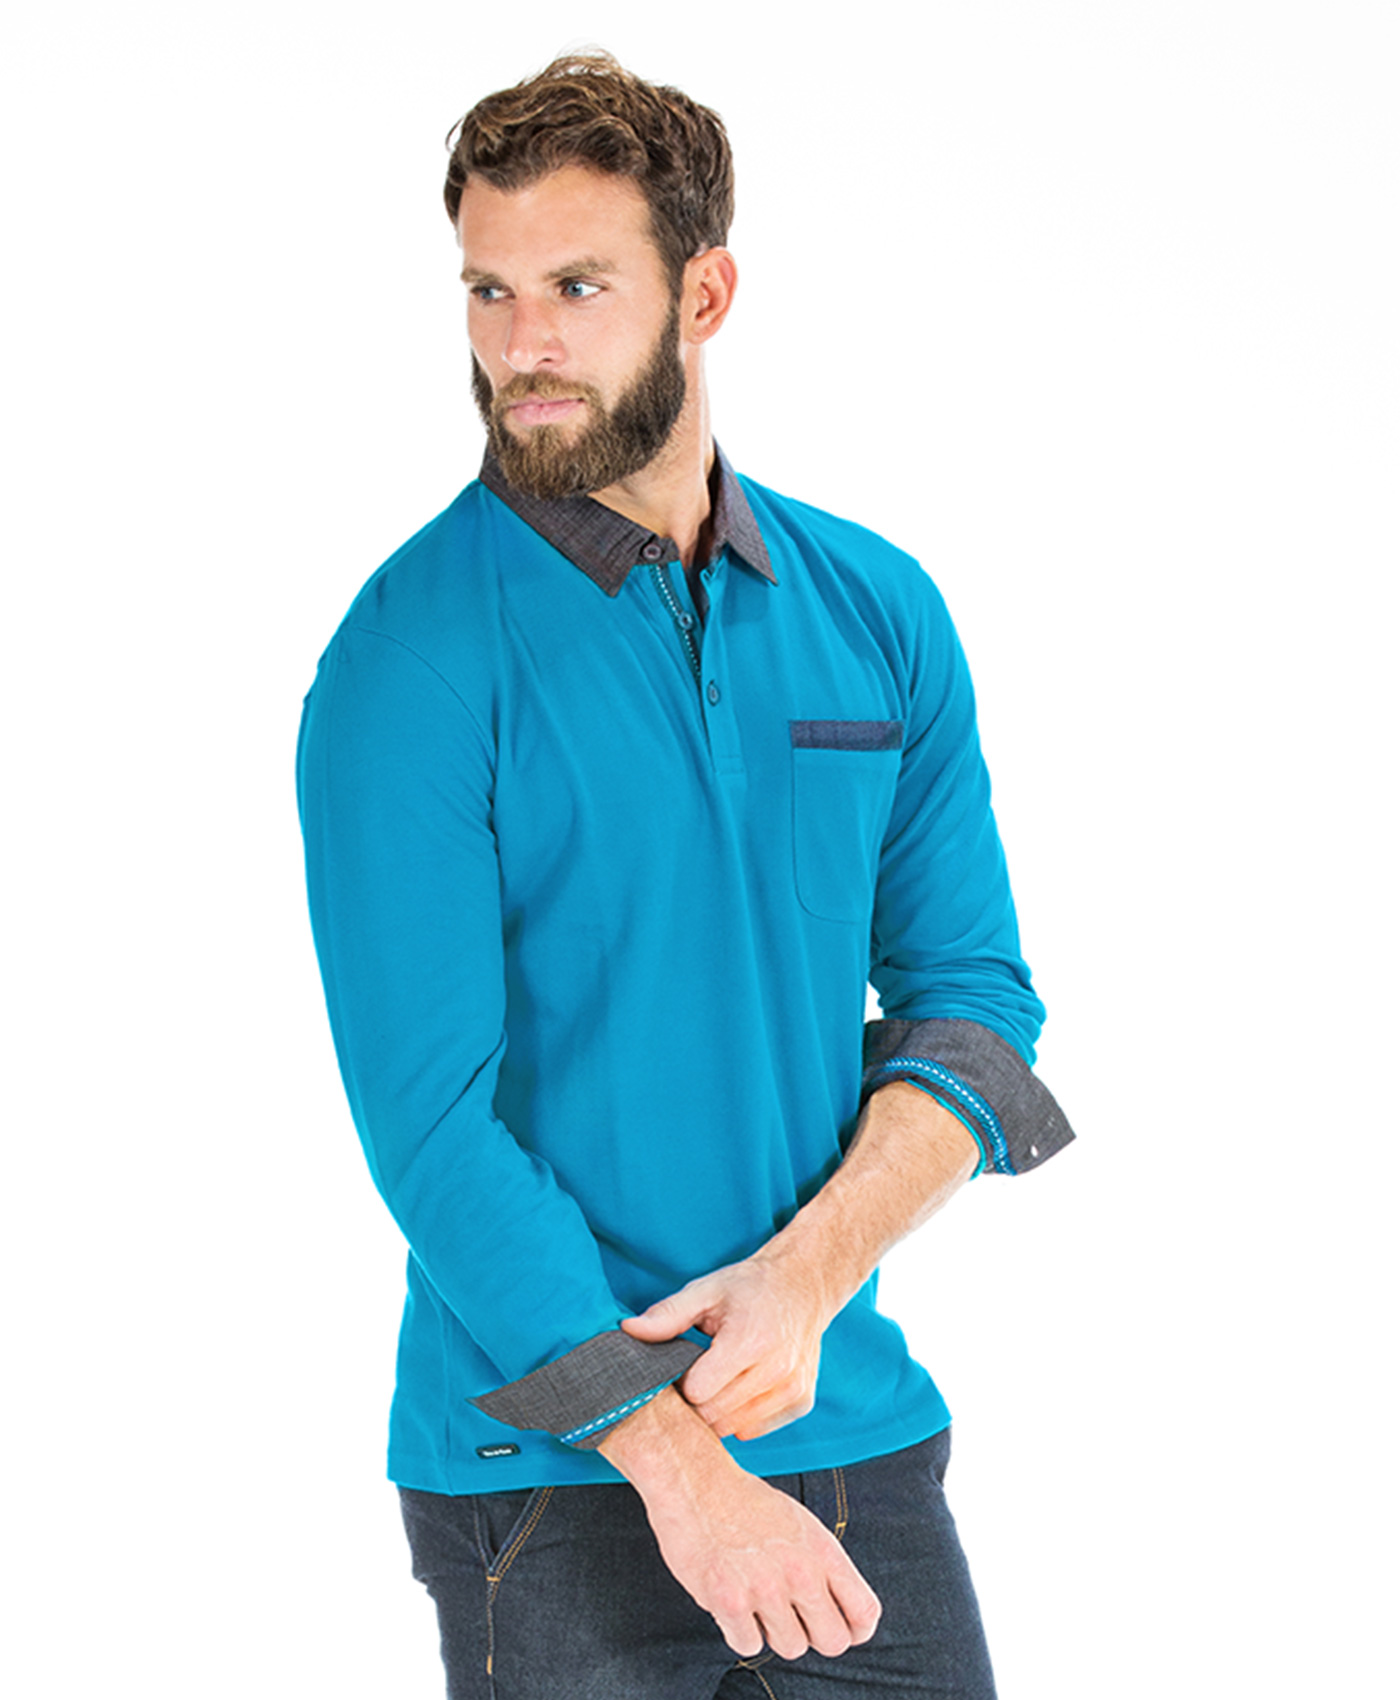 Polo turquoise homme - Mode marine Homme